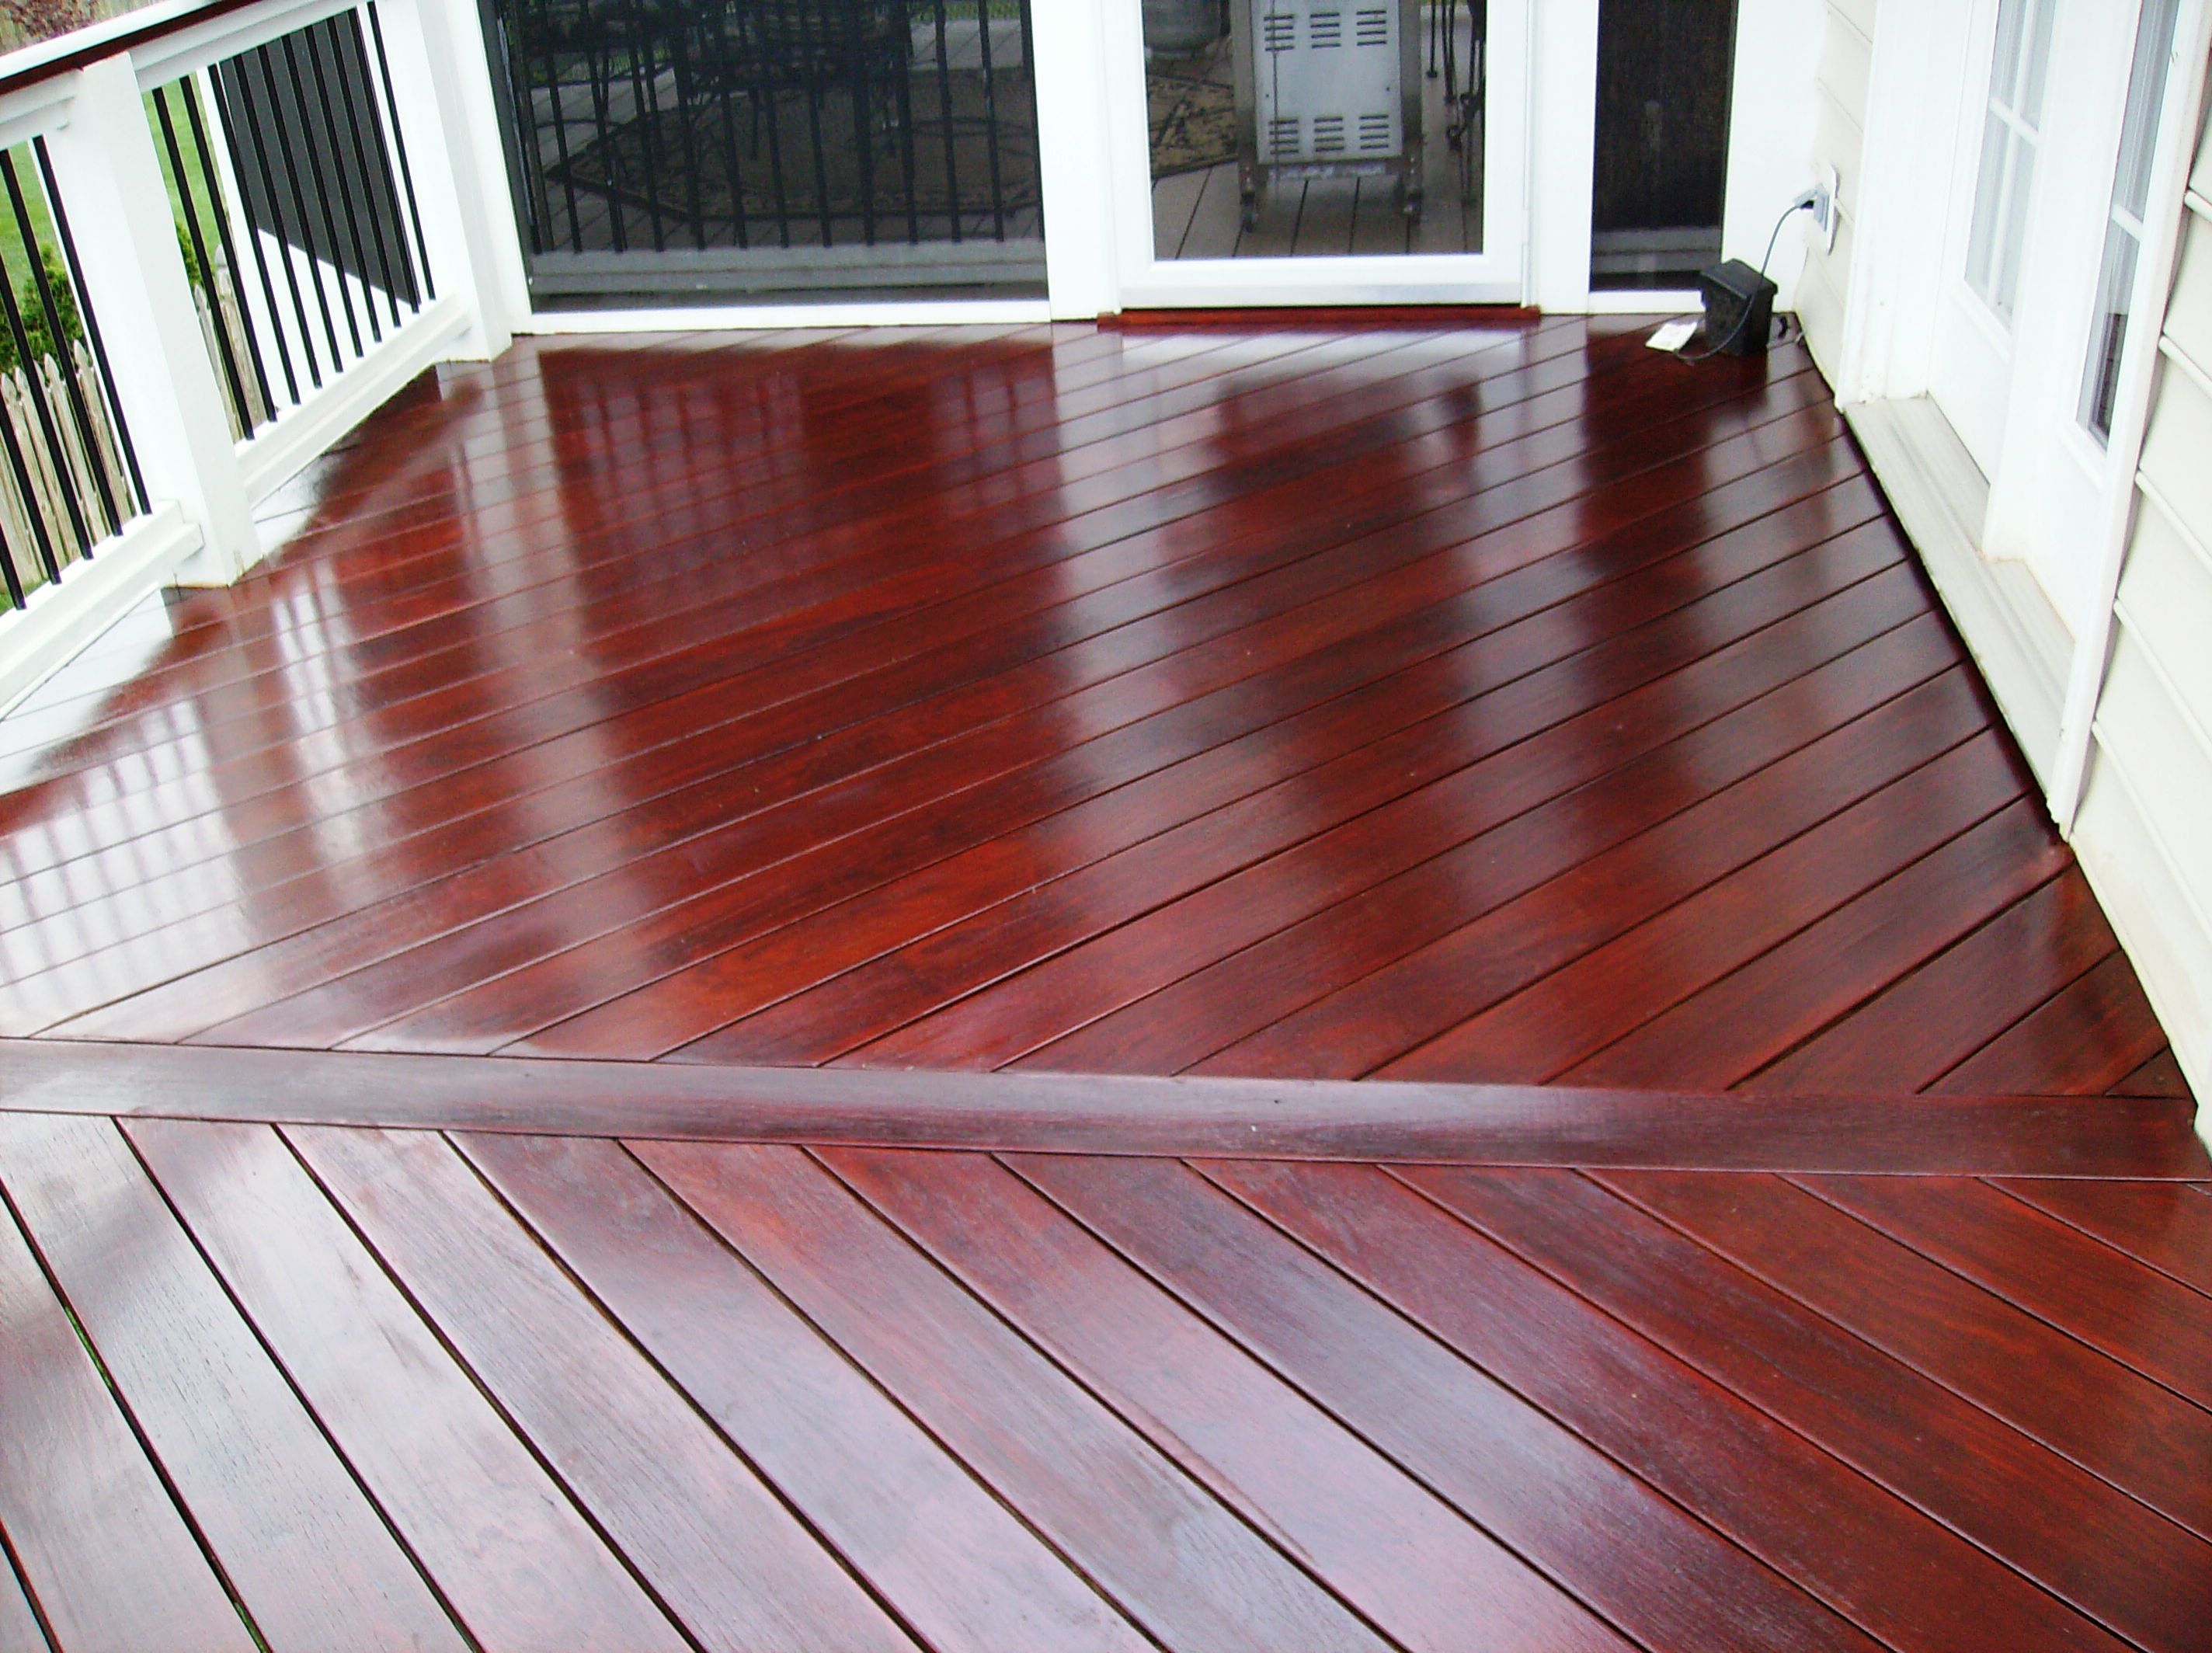 Most beautiful painting projects to try pinterest deck stain colors easy deck and decking - Red exterior wood paint plan ...